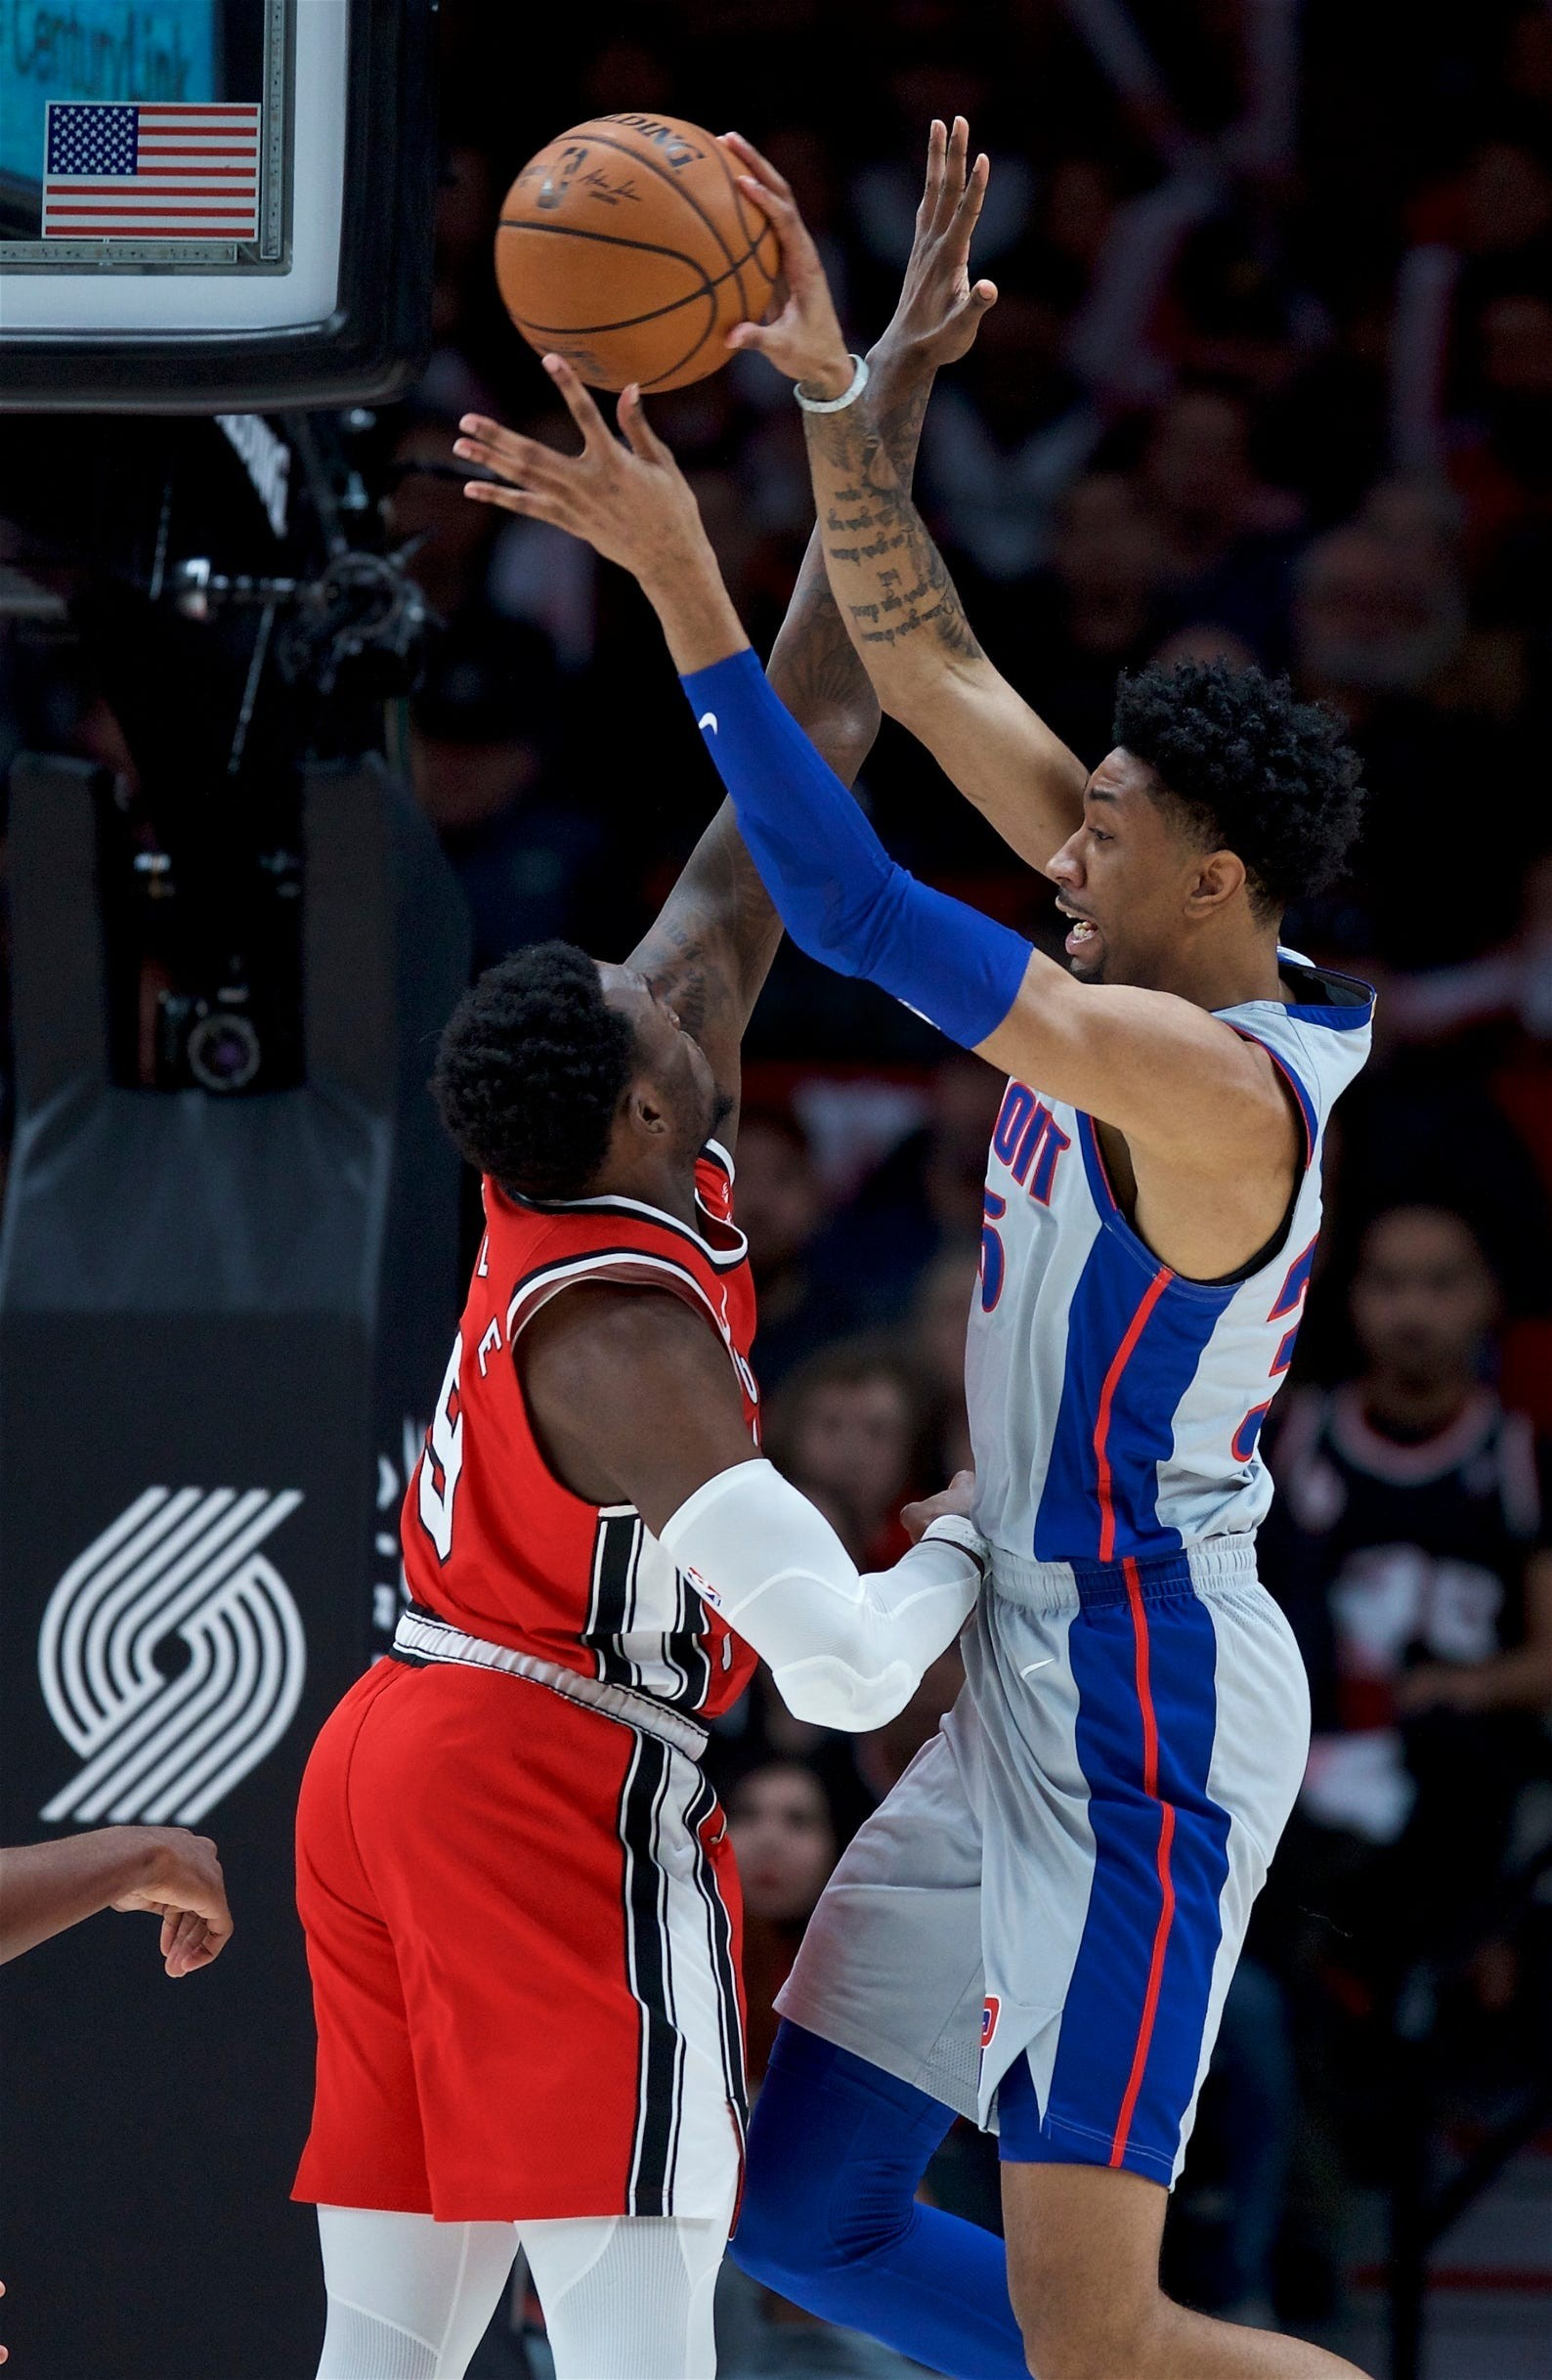 NBAVIDEO: Blazers' Carmelo Anthony ices the game vs. Pistons off the choice and pop with CJ McCollum